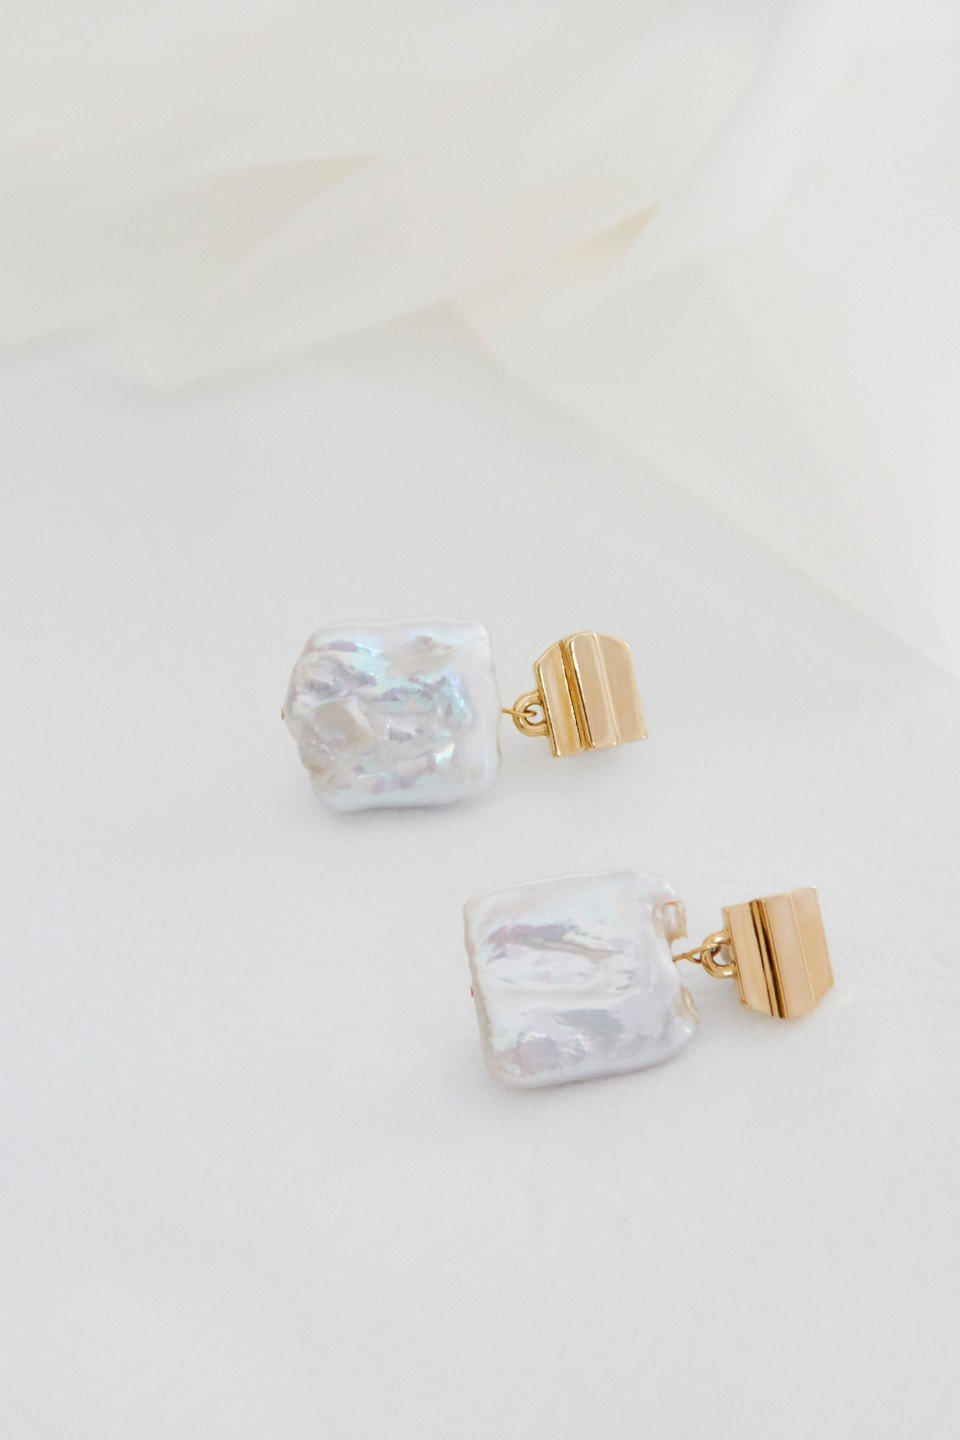 14k gold layered dome + freshwater pearl earrings